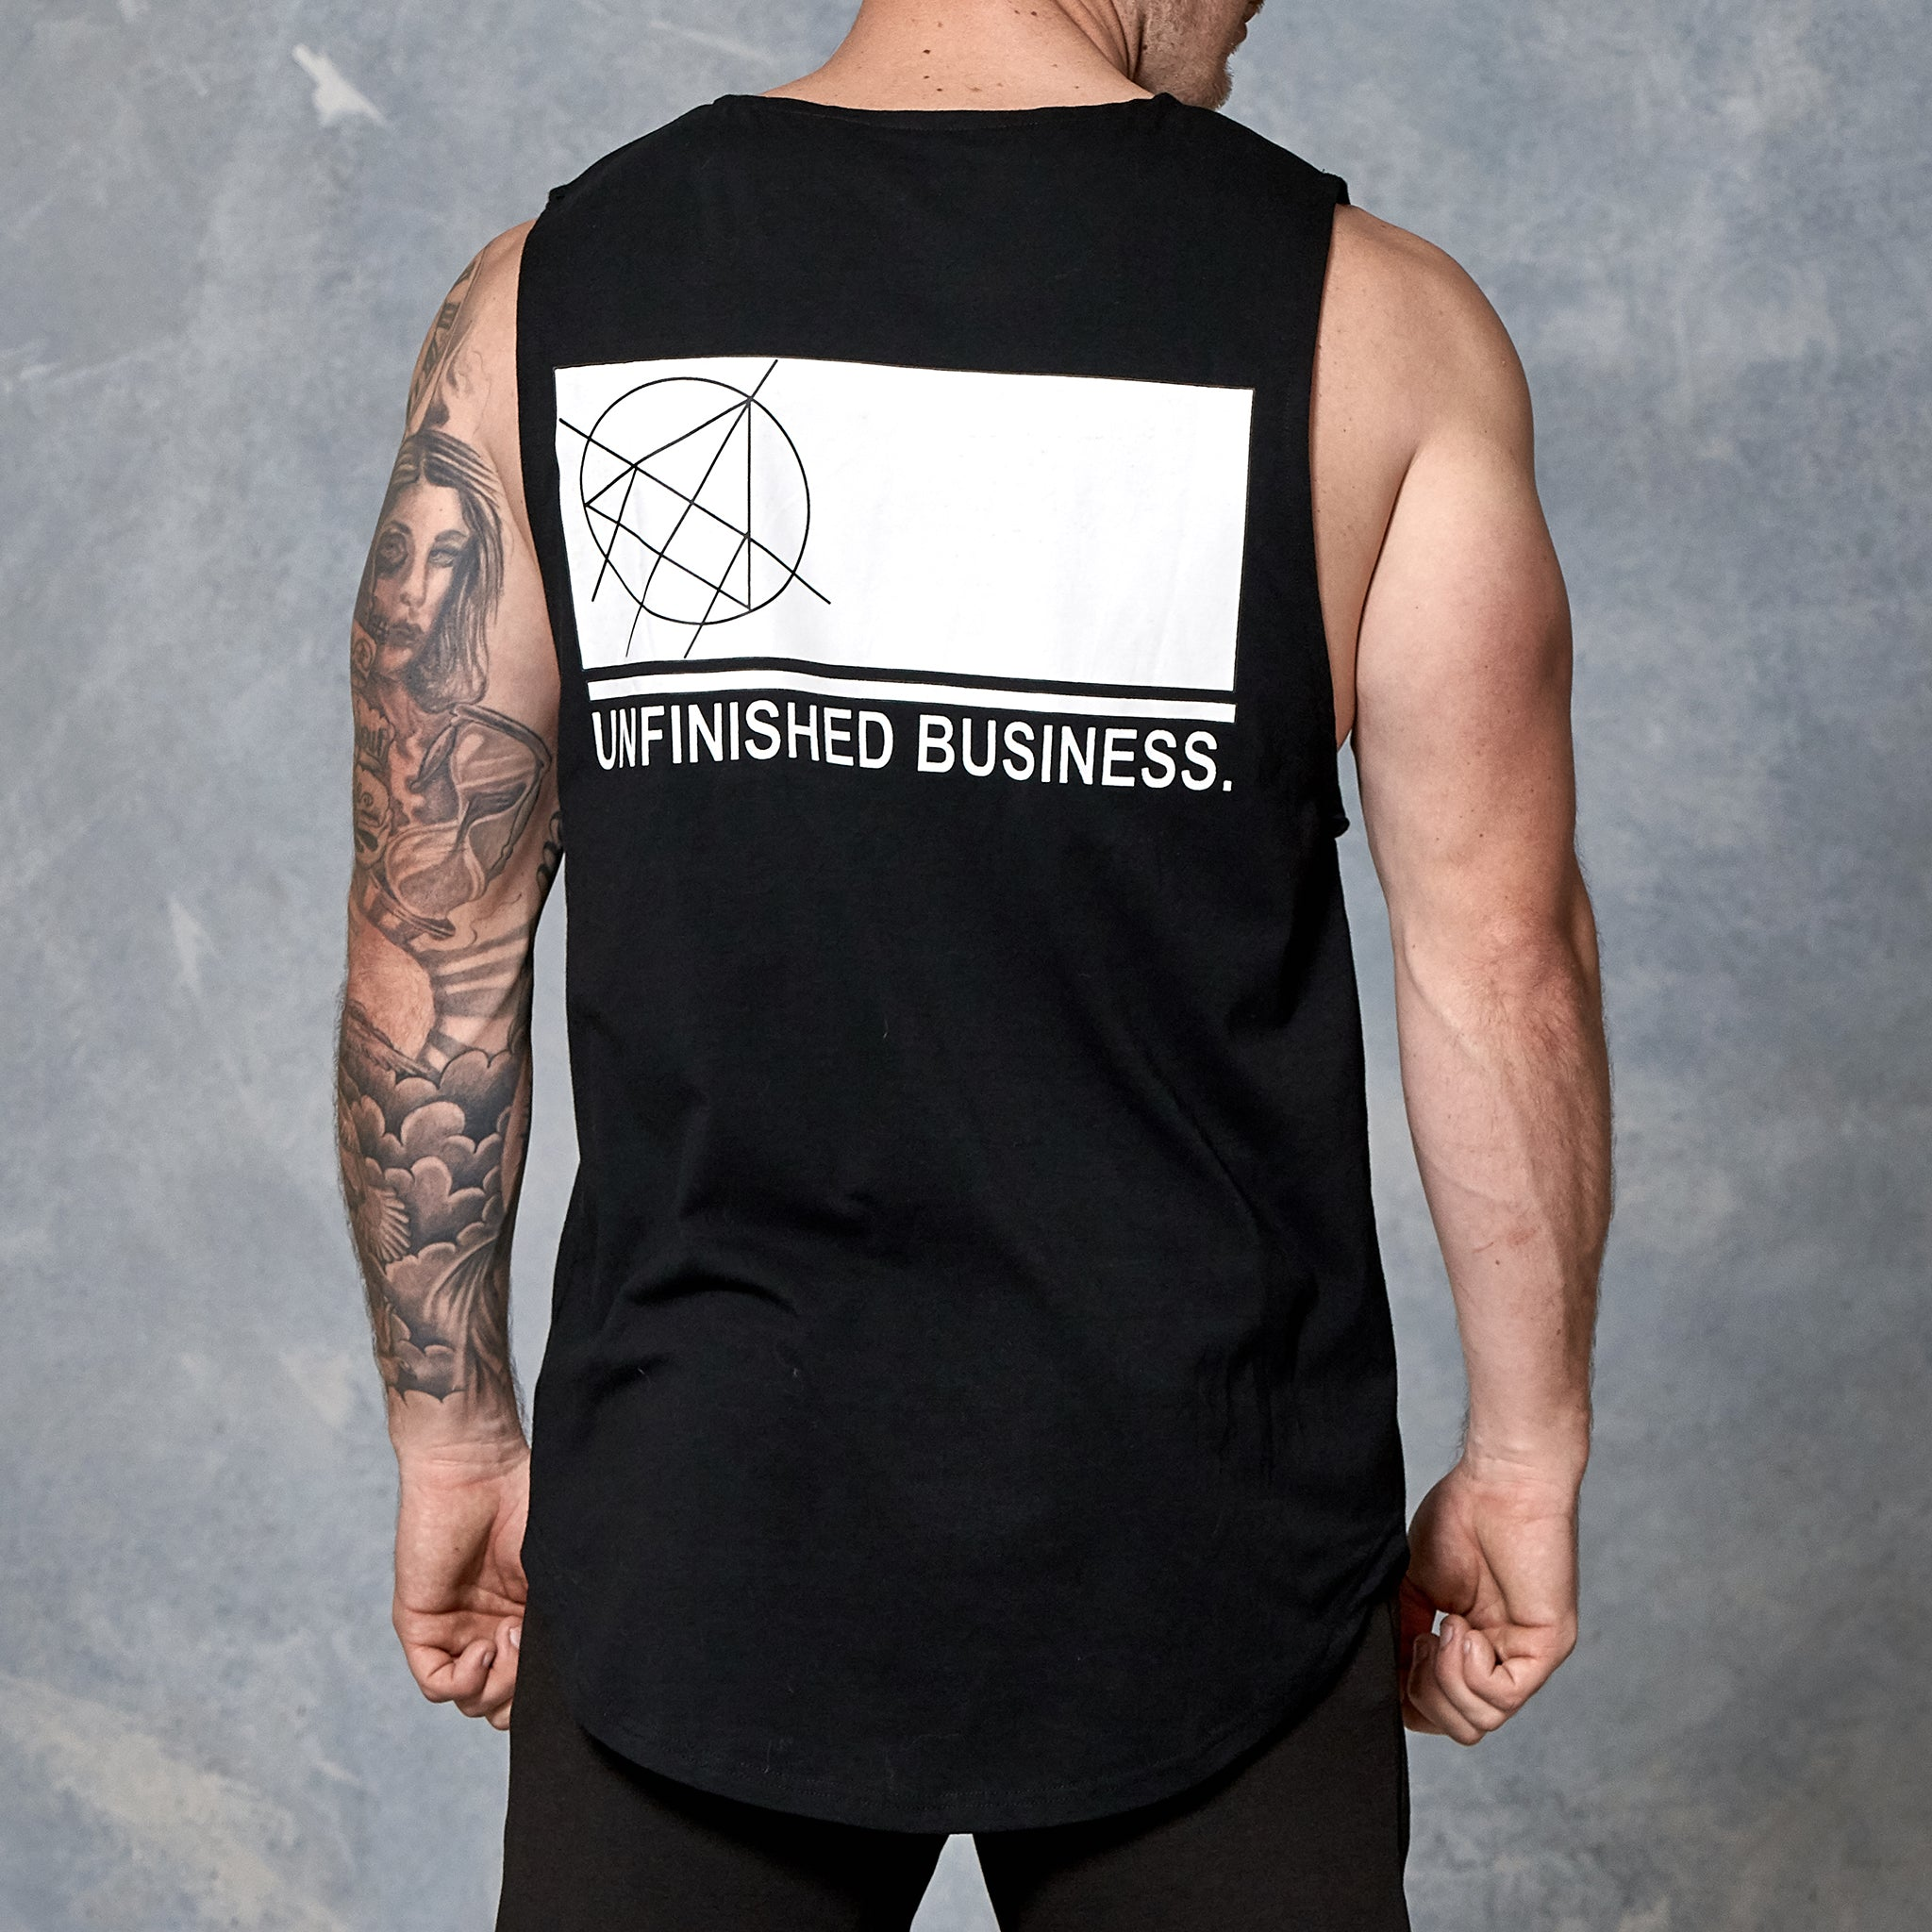 UNFINISHED BUSINESS MUSCLE TANK